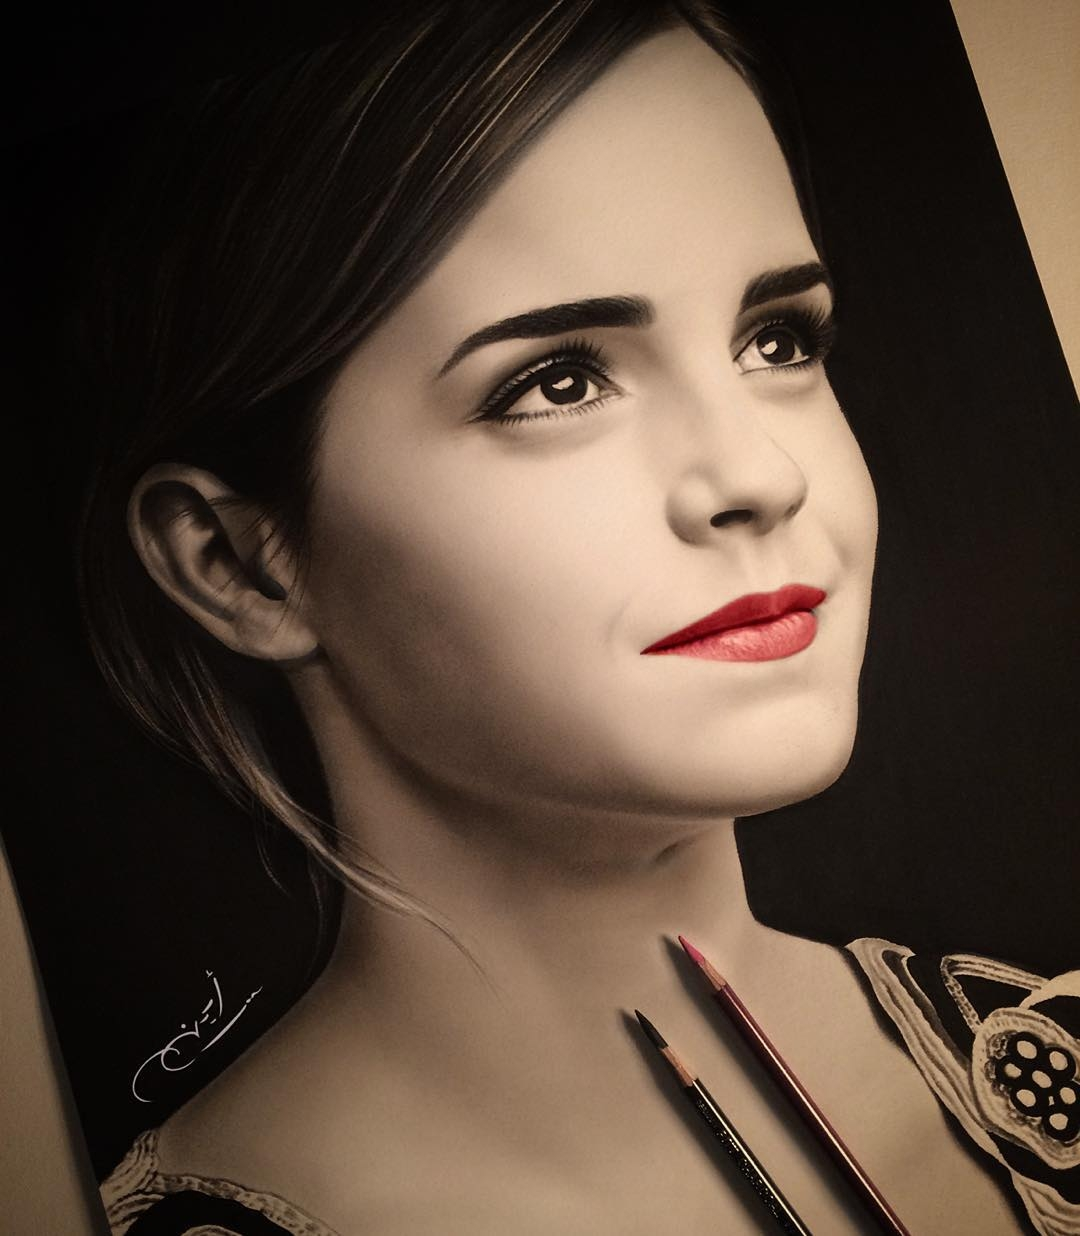 05-Emma-Watson-aymanarts-Realistic-Drawings-of-Celebrities-and-Other-www-designstack-co